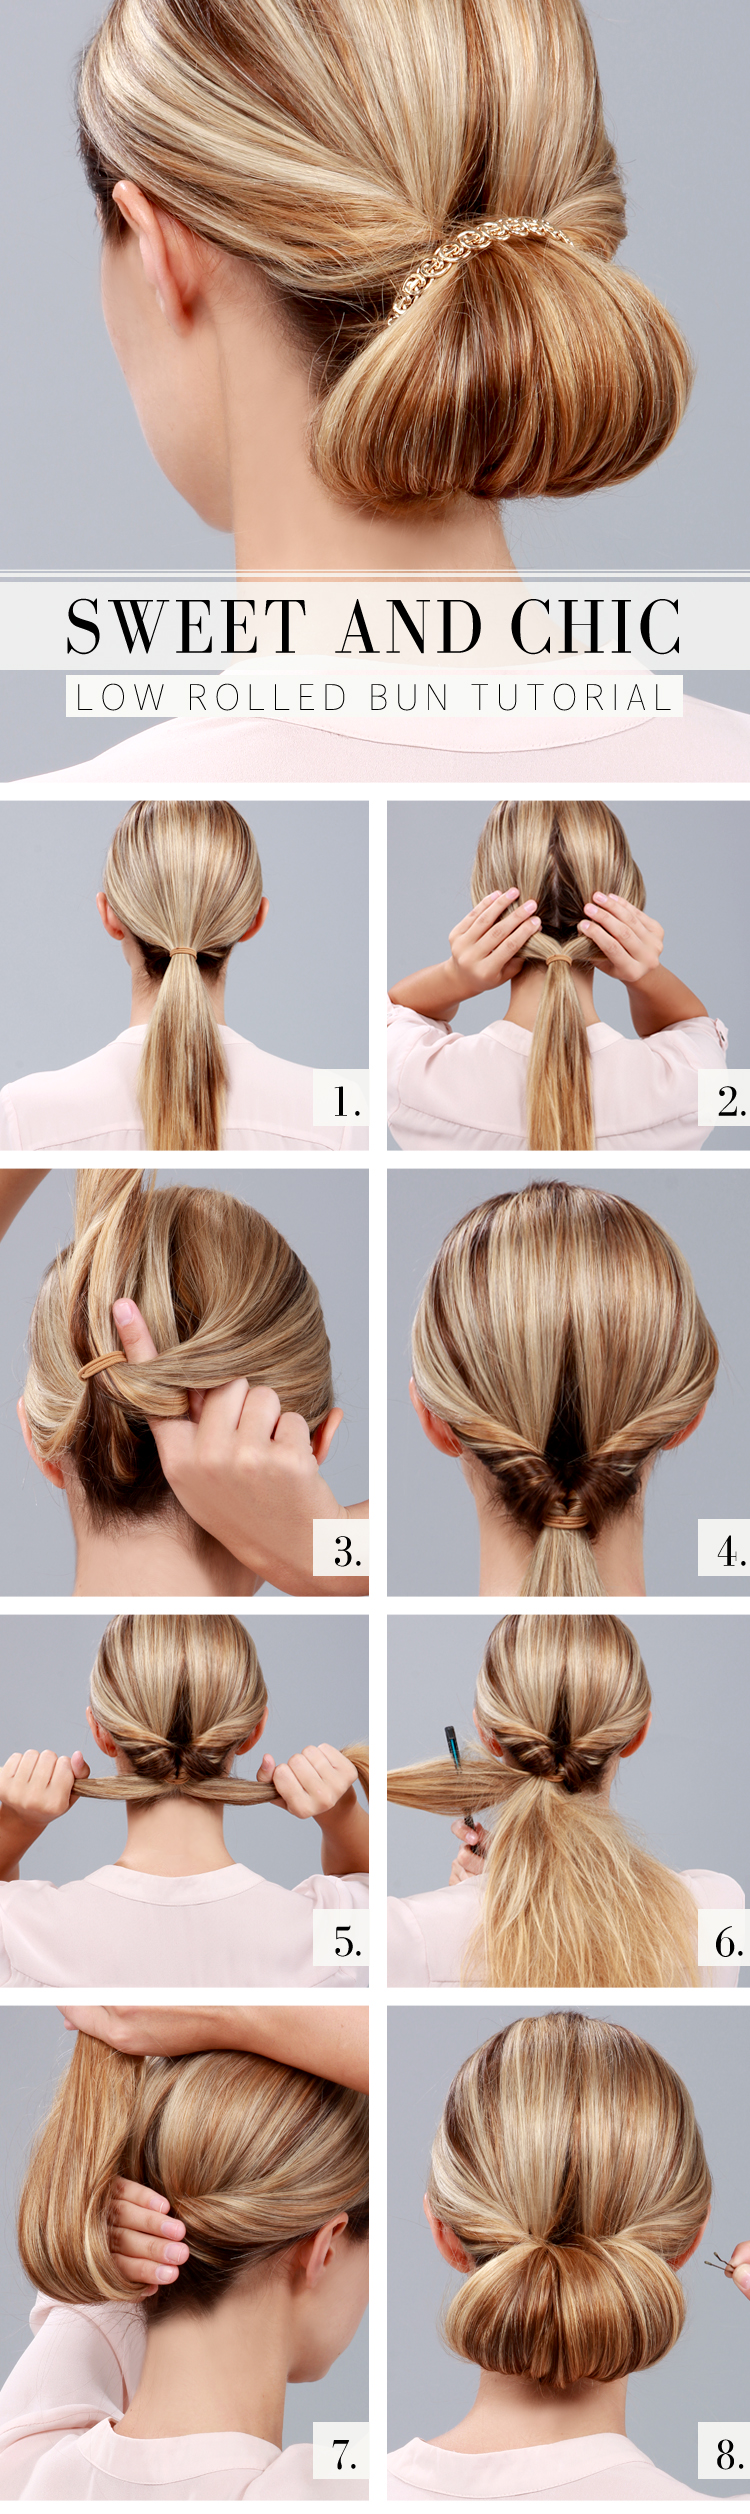 Low Rolled Bun Hairstyle Tutorial